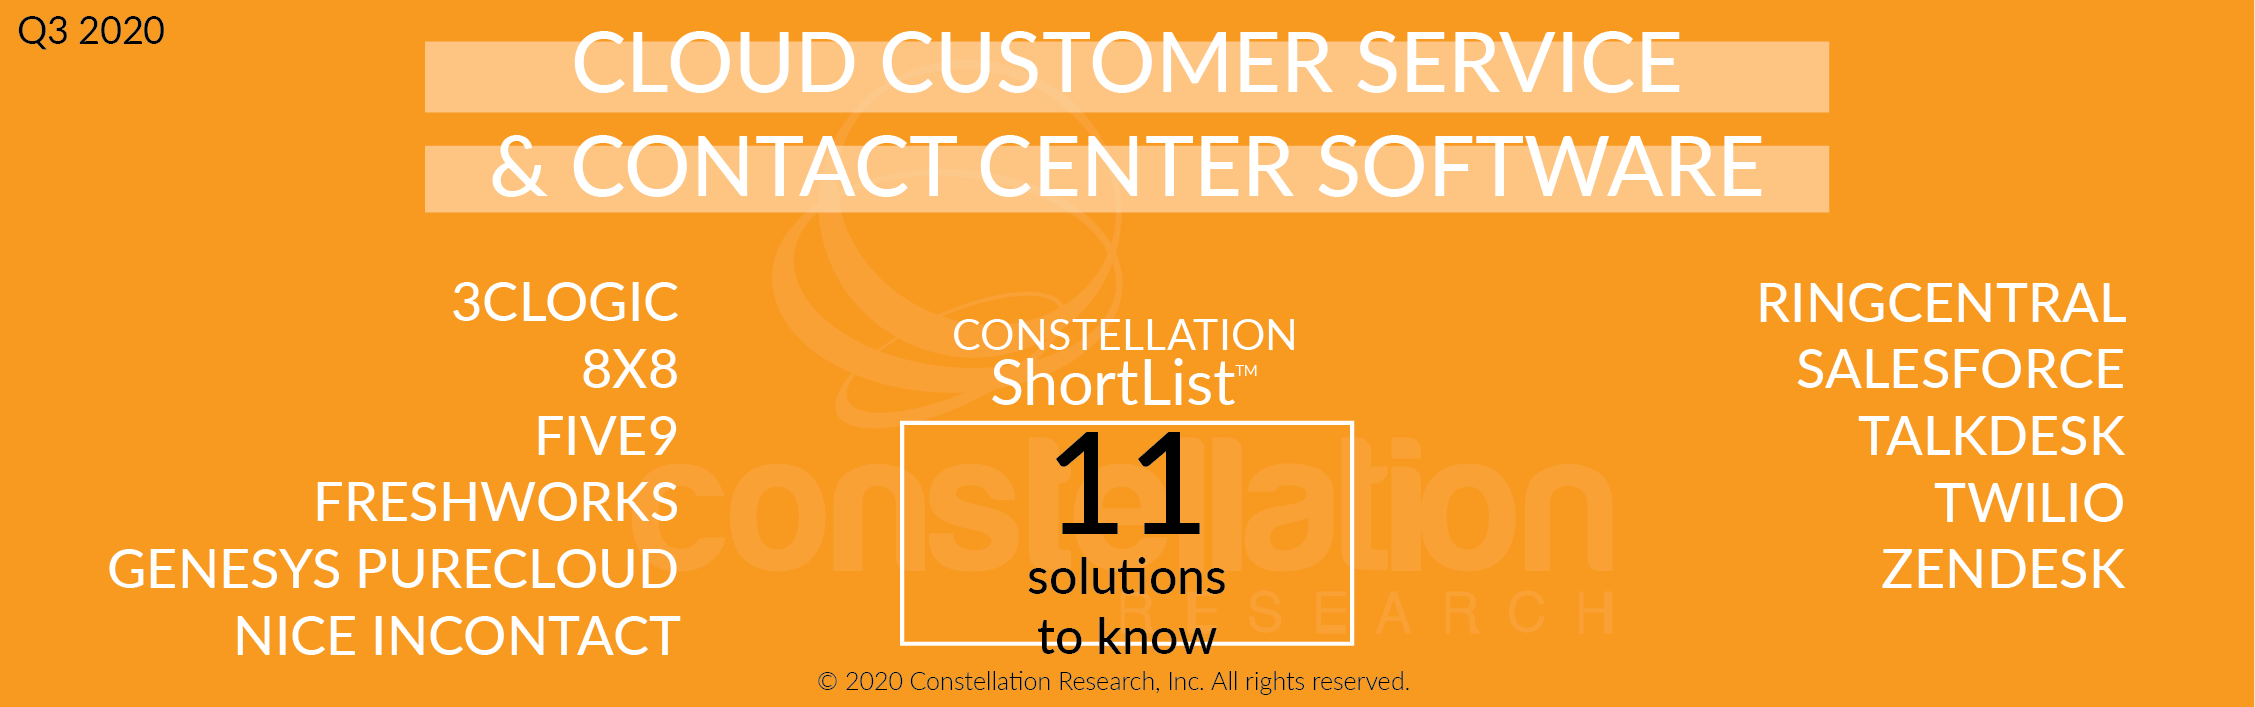 Constellation ShortList™ Cloud Customer Service and Contact Center Software